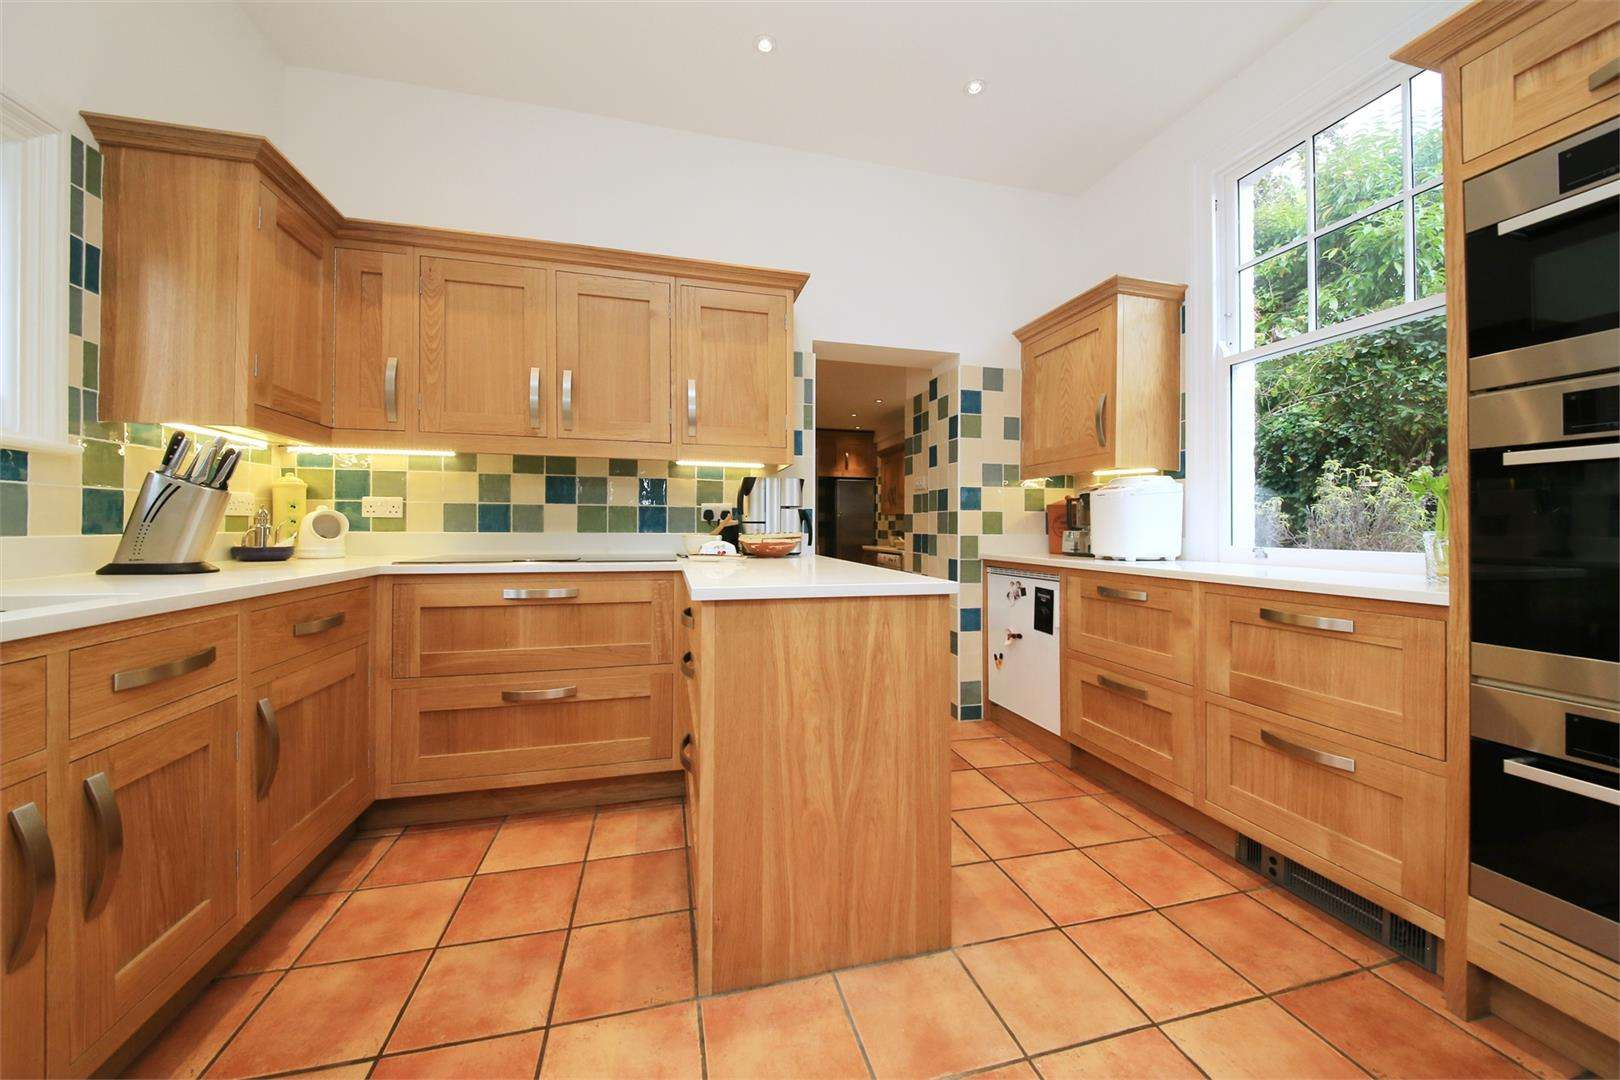 5 bed to rent - (Property Image 1)